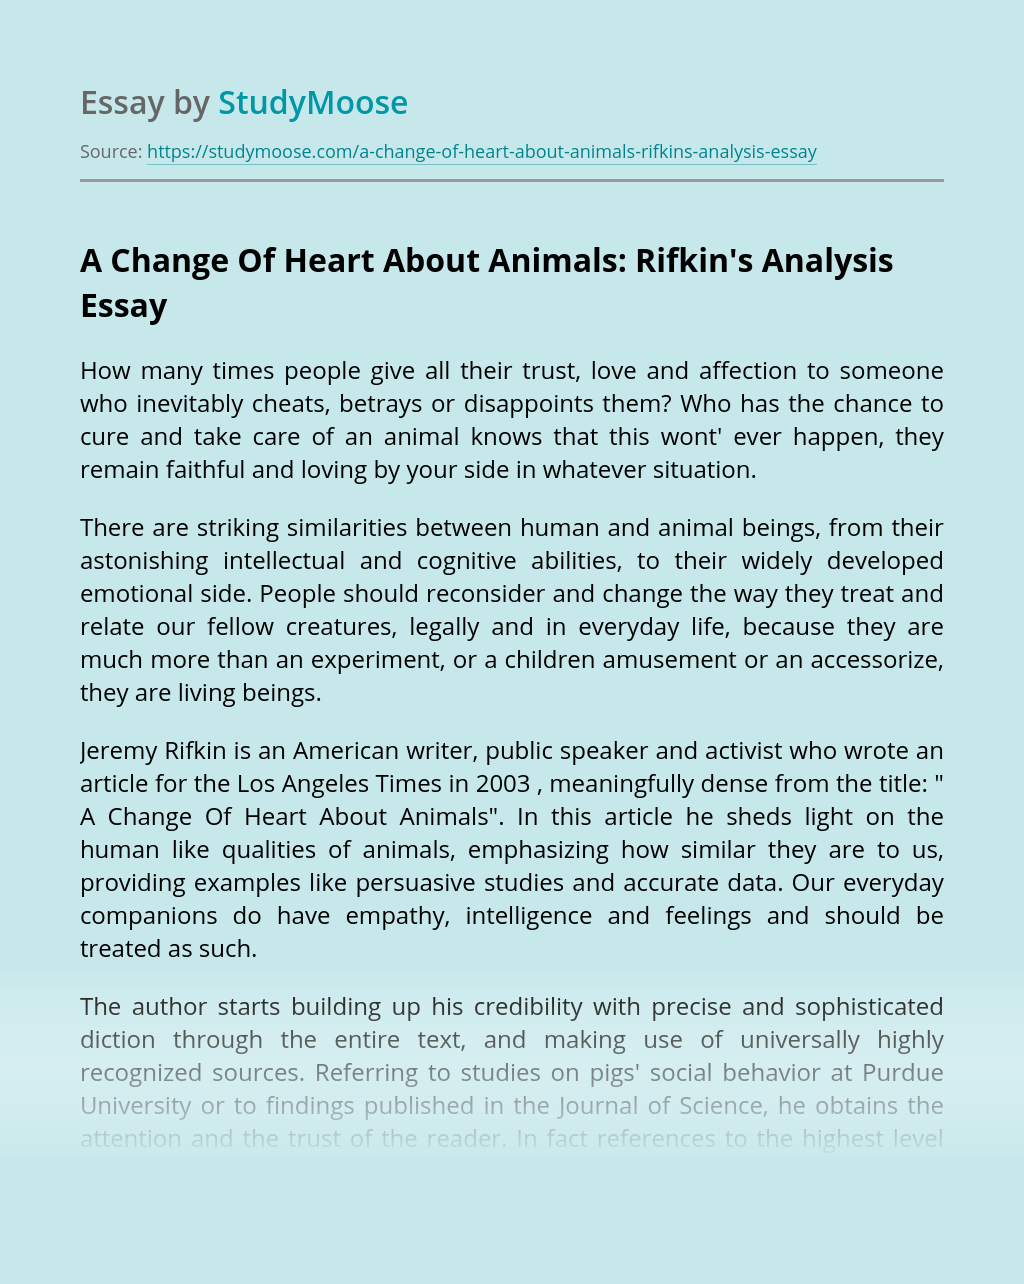 A Change Of Heart About Animals: Rifkin's Analysis